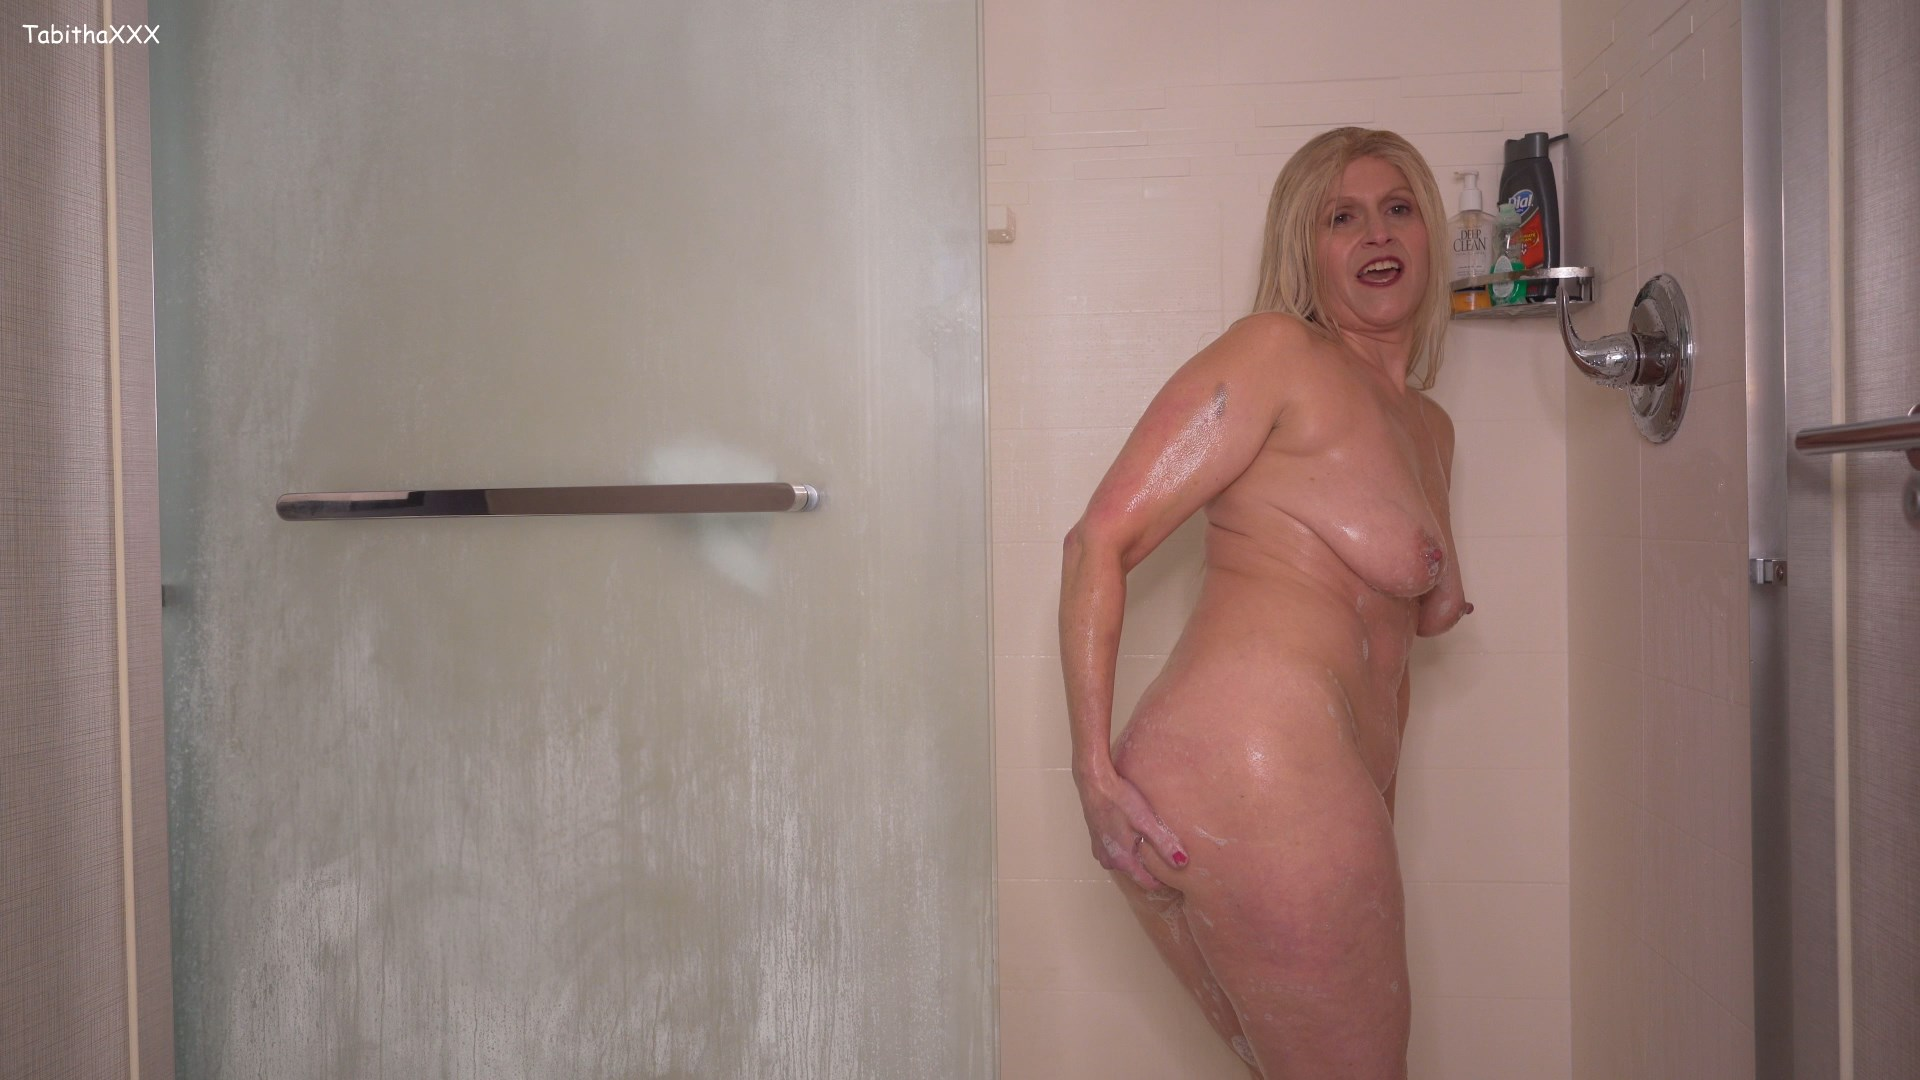 TabithaXXX - Slut MomSon BJ Shower Video for Buddies